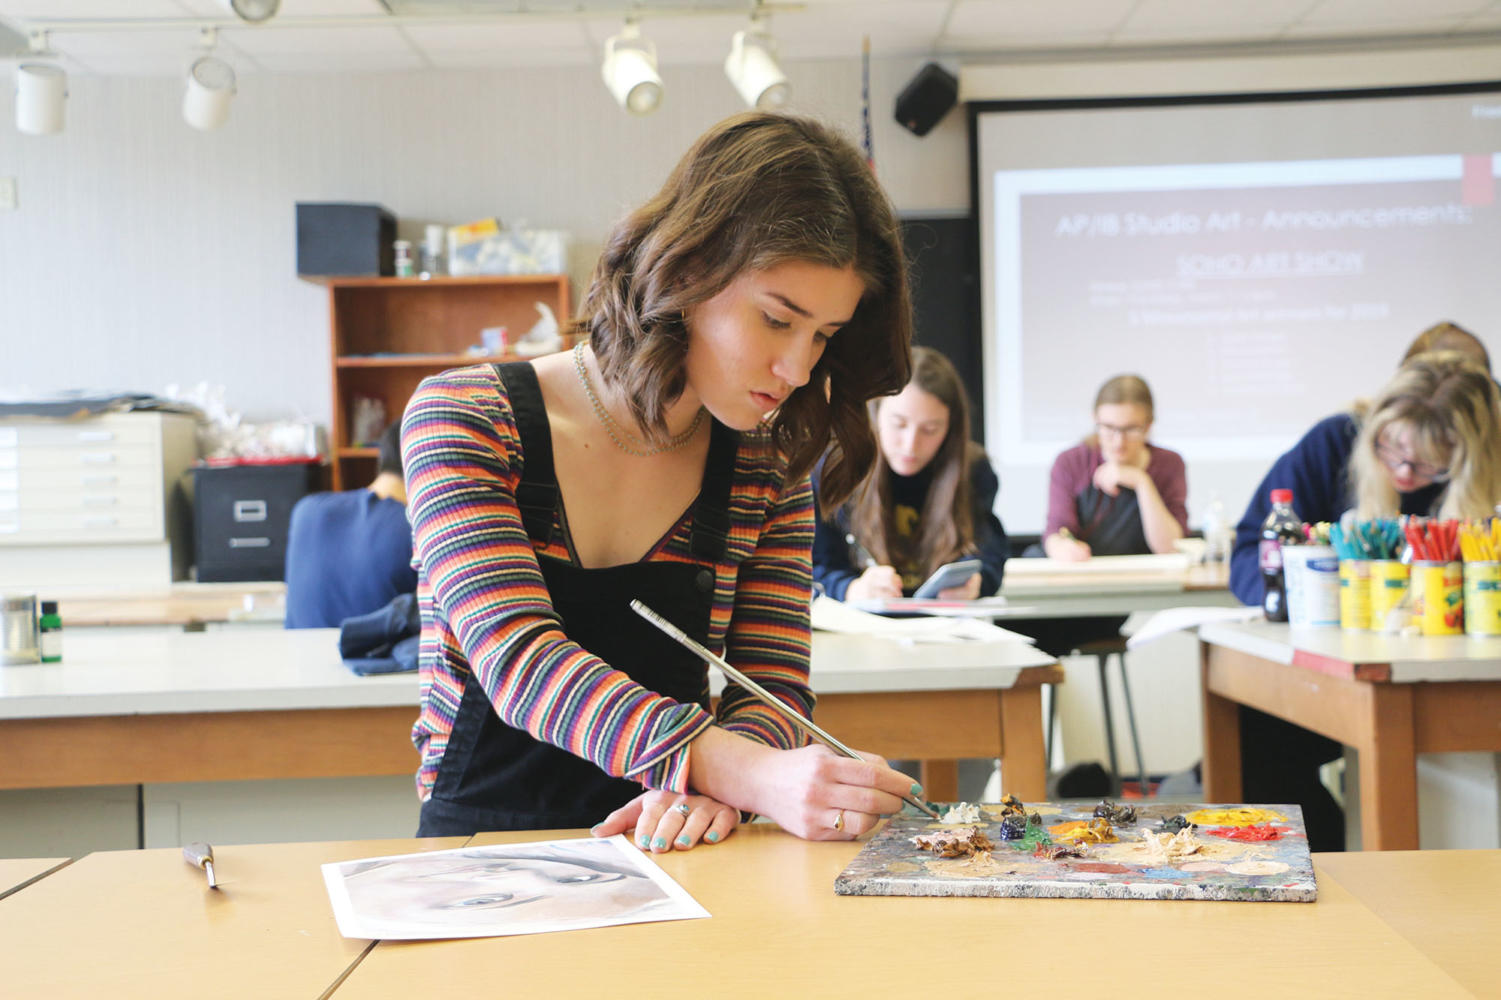 COLORING IN THE CANVAS: Sydney Remble, art student and senior, works on her painting during her class period. Remble said although she will not major in art, she hopes to incorporate it in her future.